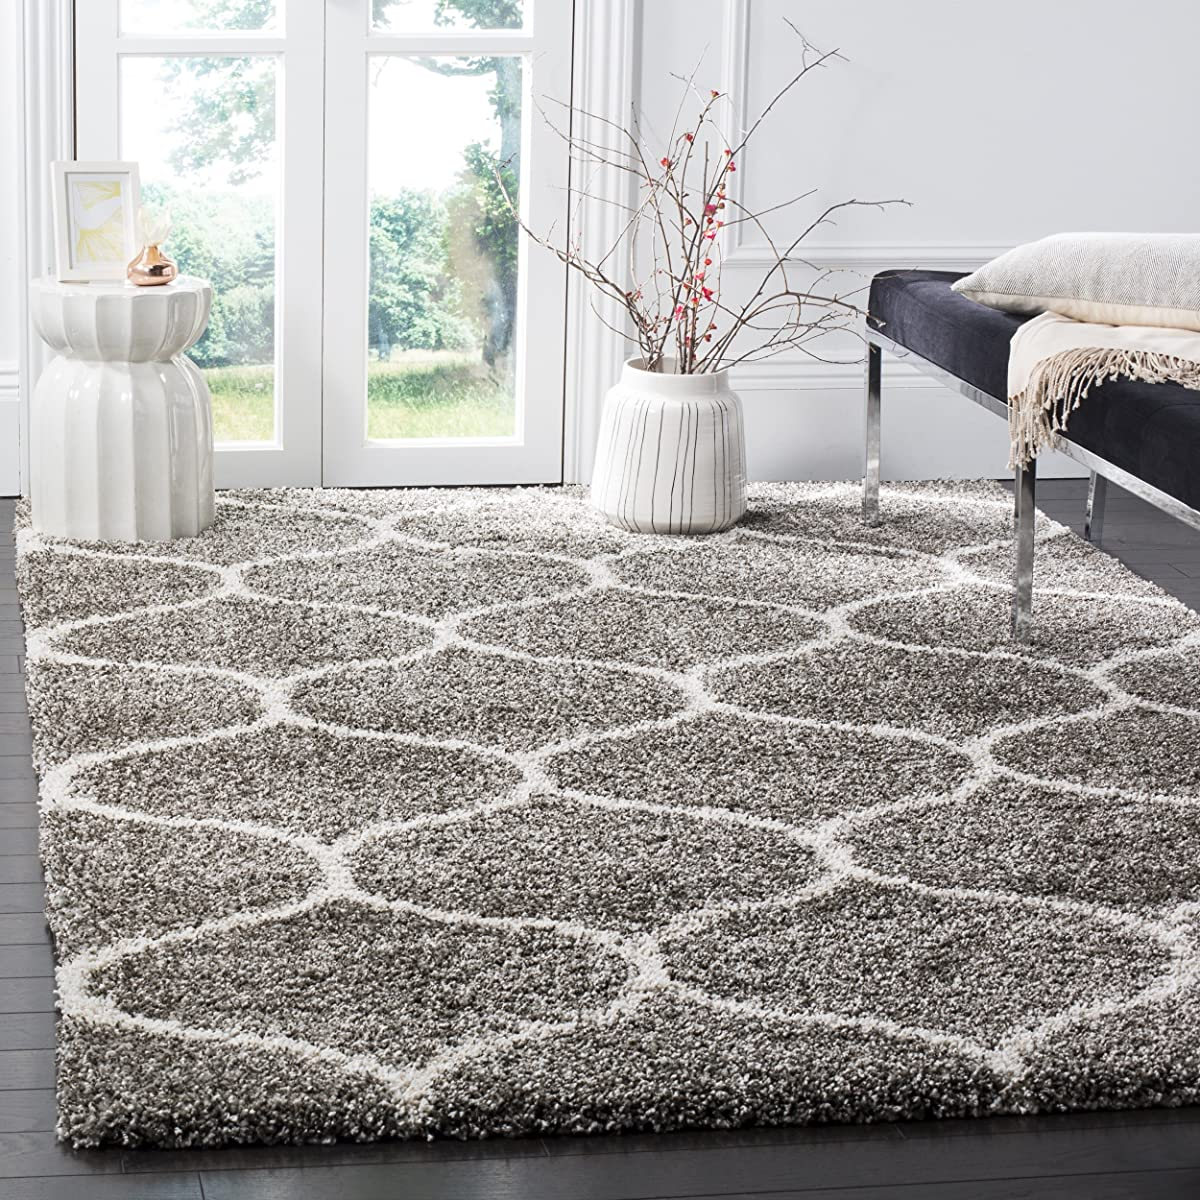 Safavieh Hudson Shag Collection Sgh280b Grey And Ivory